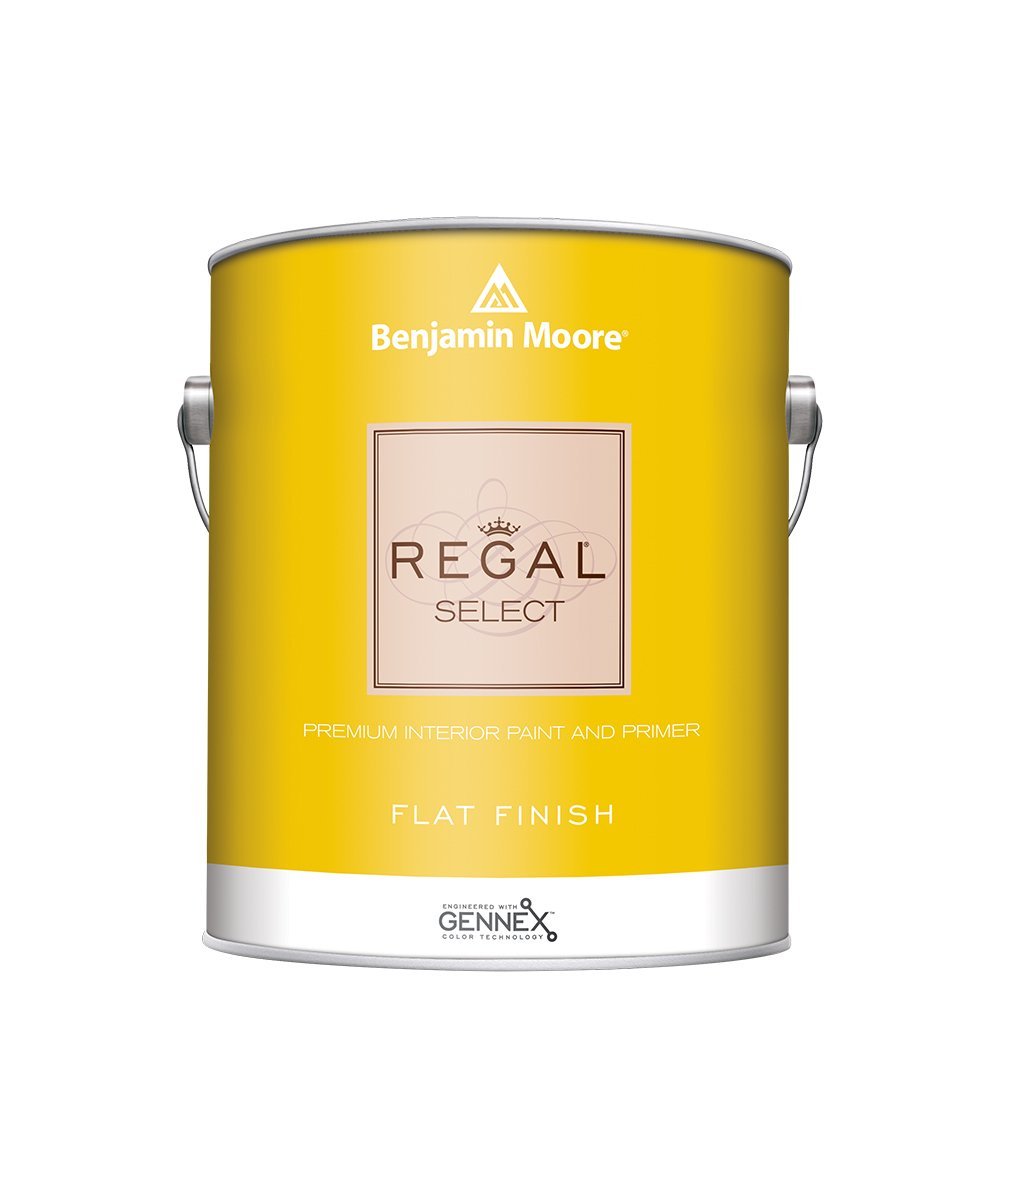 Benjamin Moore REGAL® Select Interior Paint in a Ulti-Matte finish at Harrison Paint Co. in Shreveport, Bossier City and West Monroe, LA.